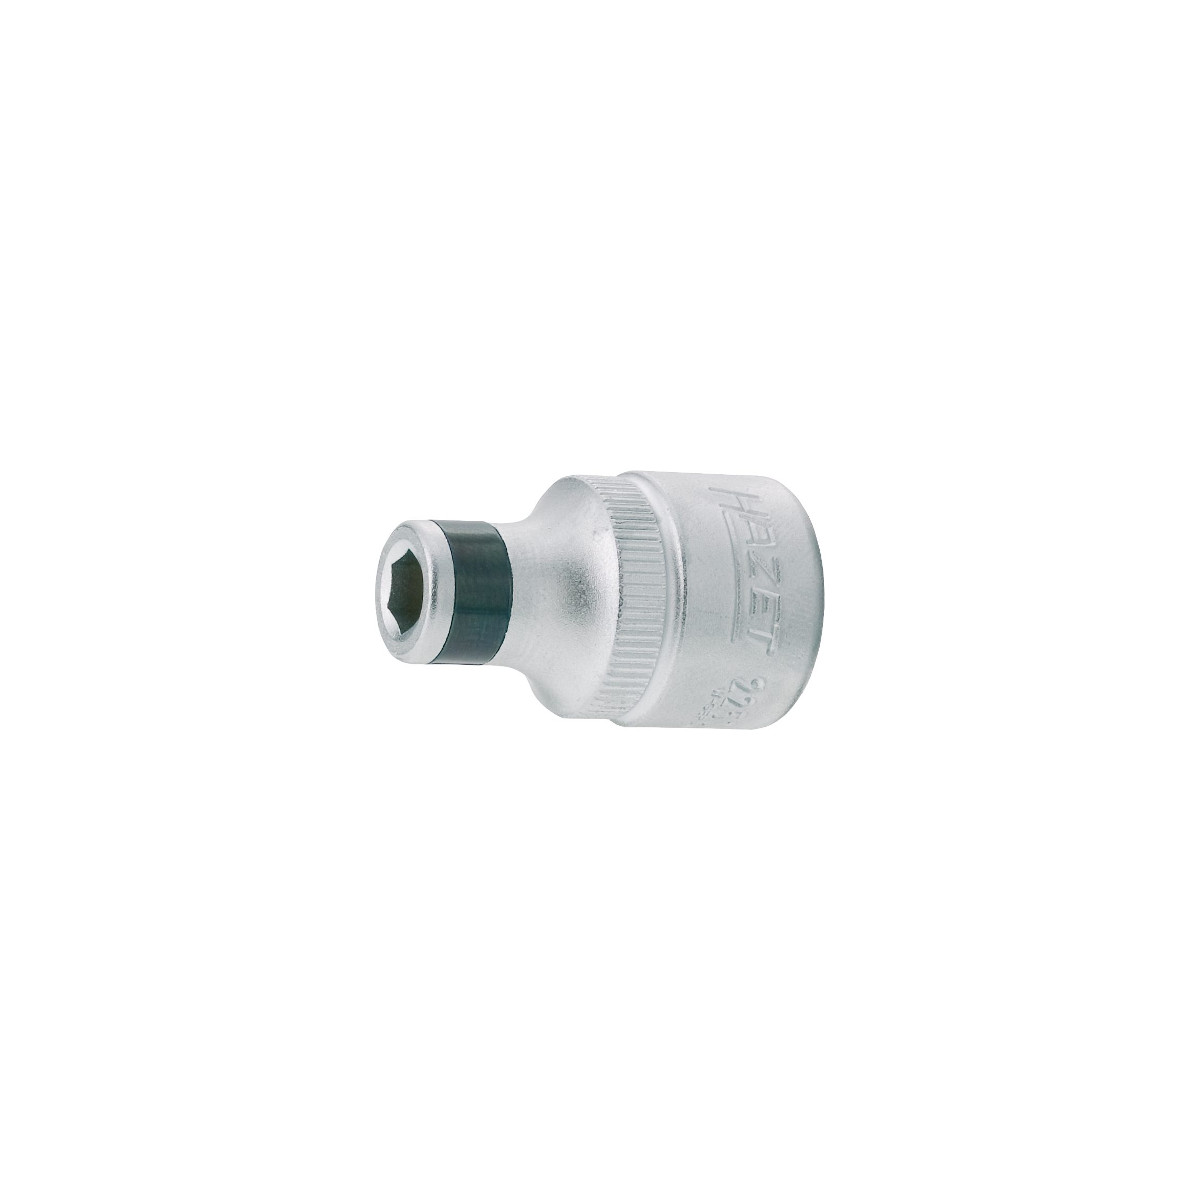 HAZET 2250-2 Adapter, 30.0 mm